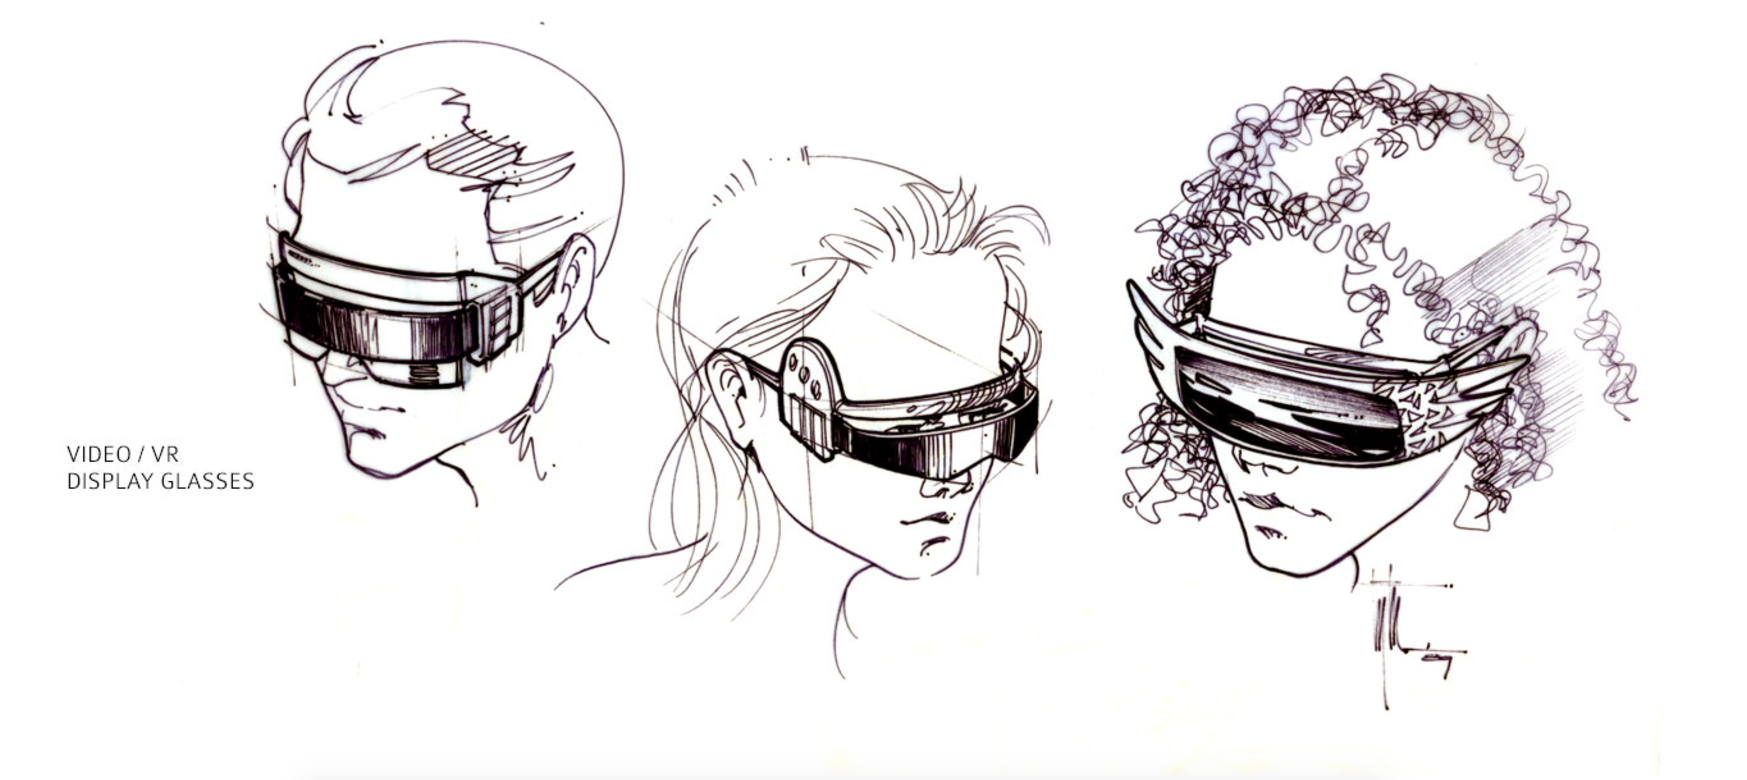 Edward Eyth Design sketching Back to the future II Video VR Display glass